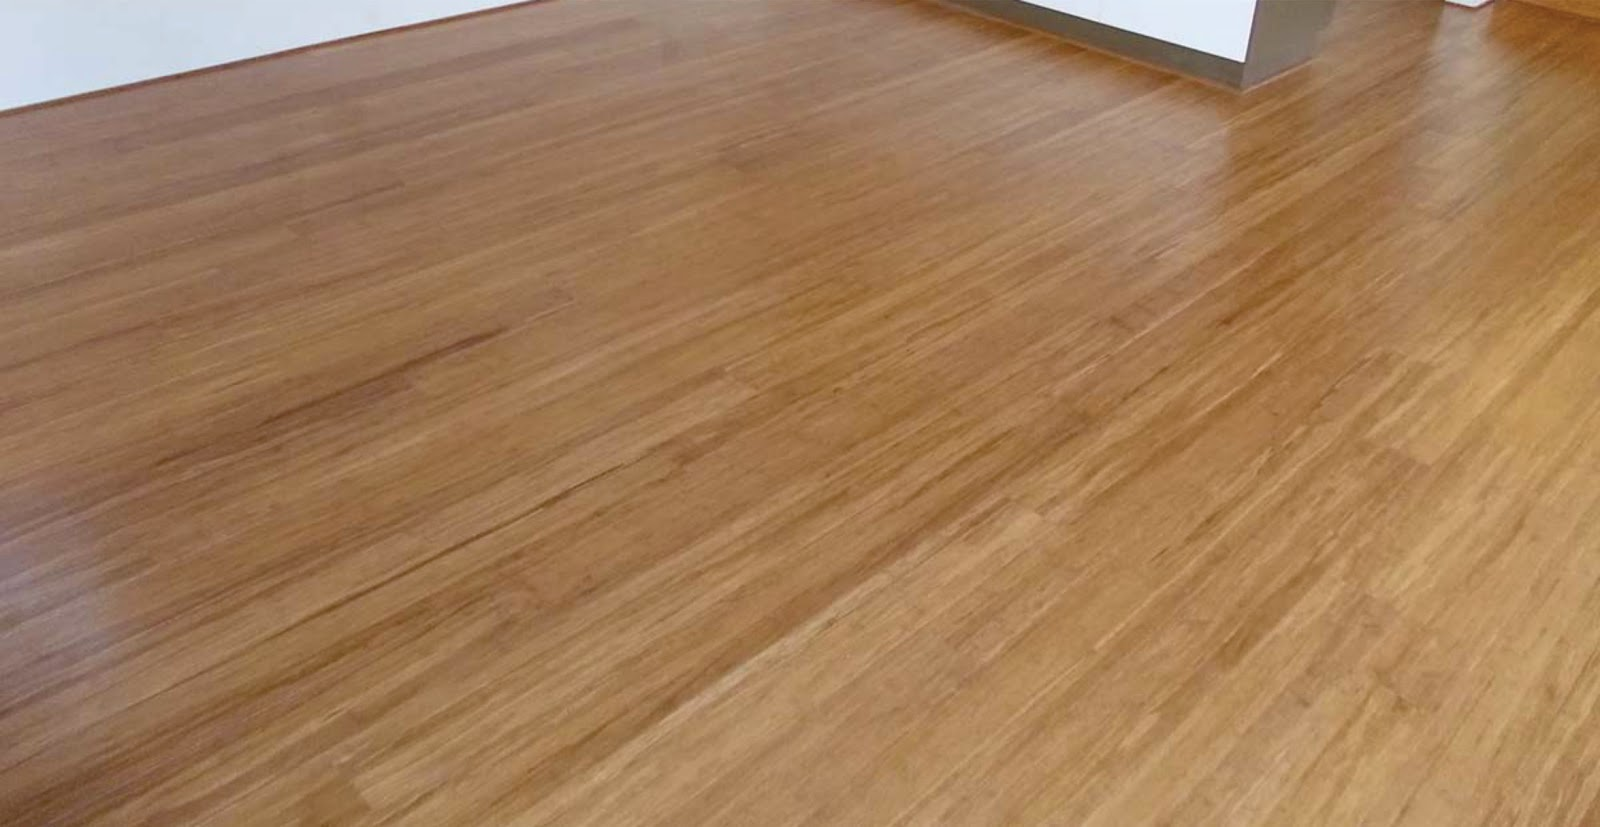 Bamboo grove photo bamboo hardwood flooring for Floating hardwood floor